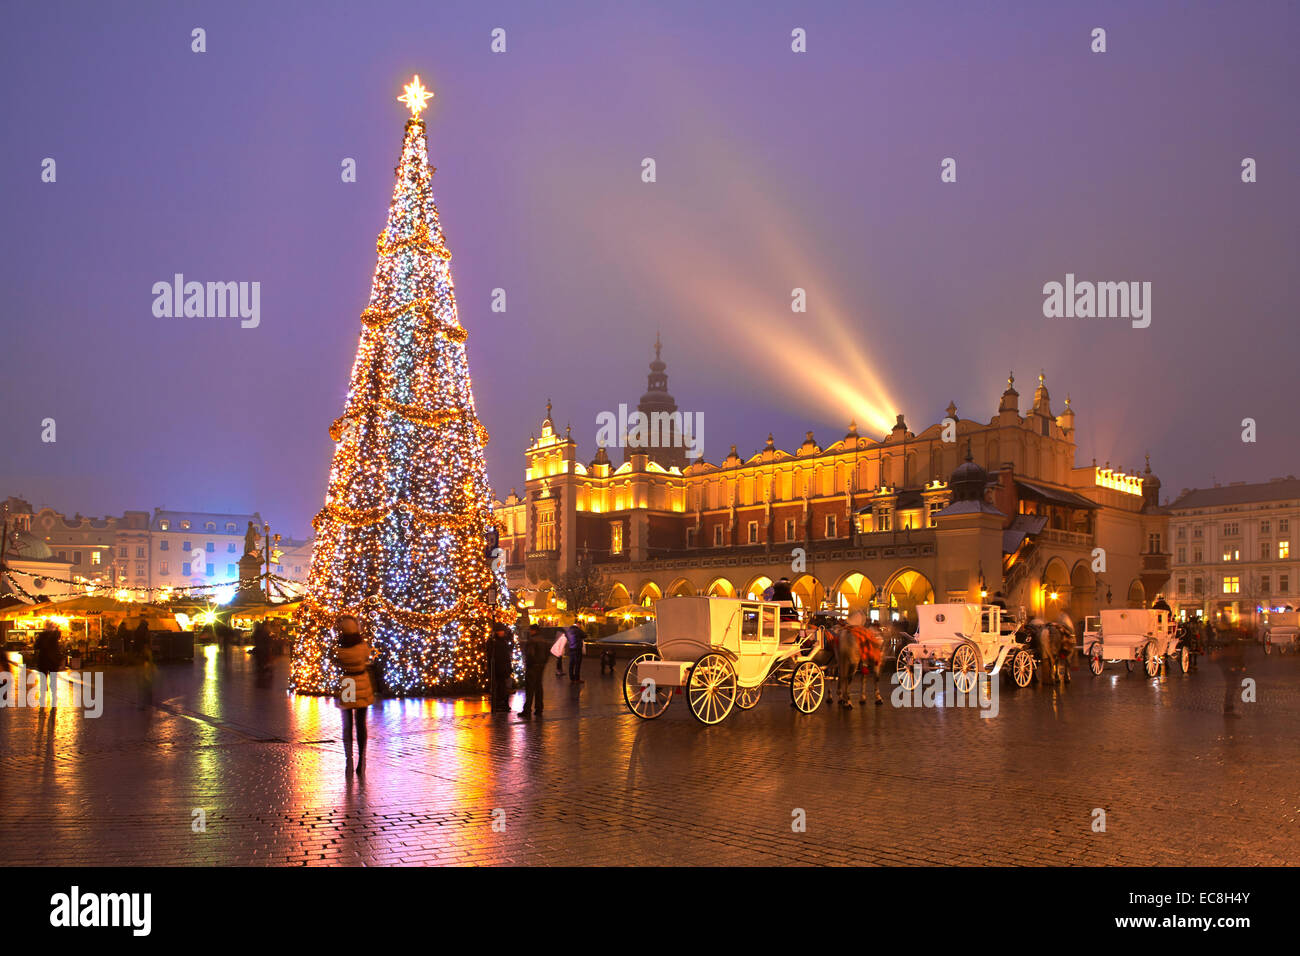 polen krakau weihnachten markt rynek glowny twilight stockfoto bild 76406427 alamy. Black Bedroom Furniture Sets. Home Design Ideas